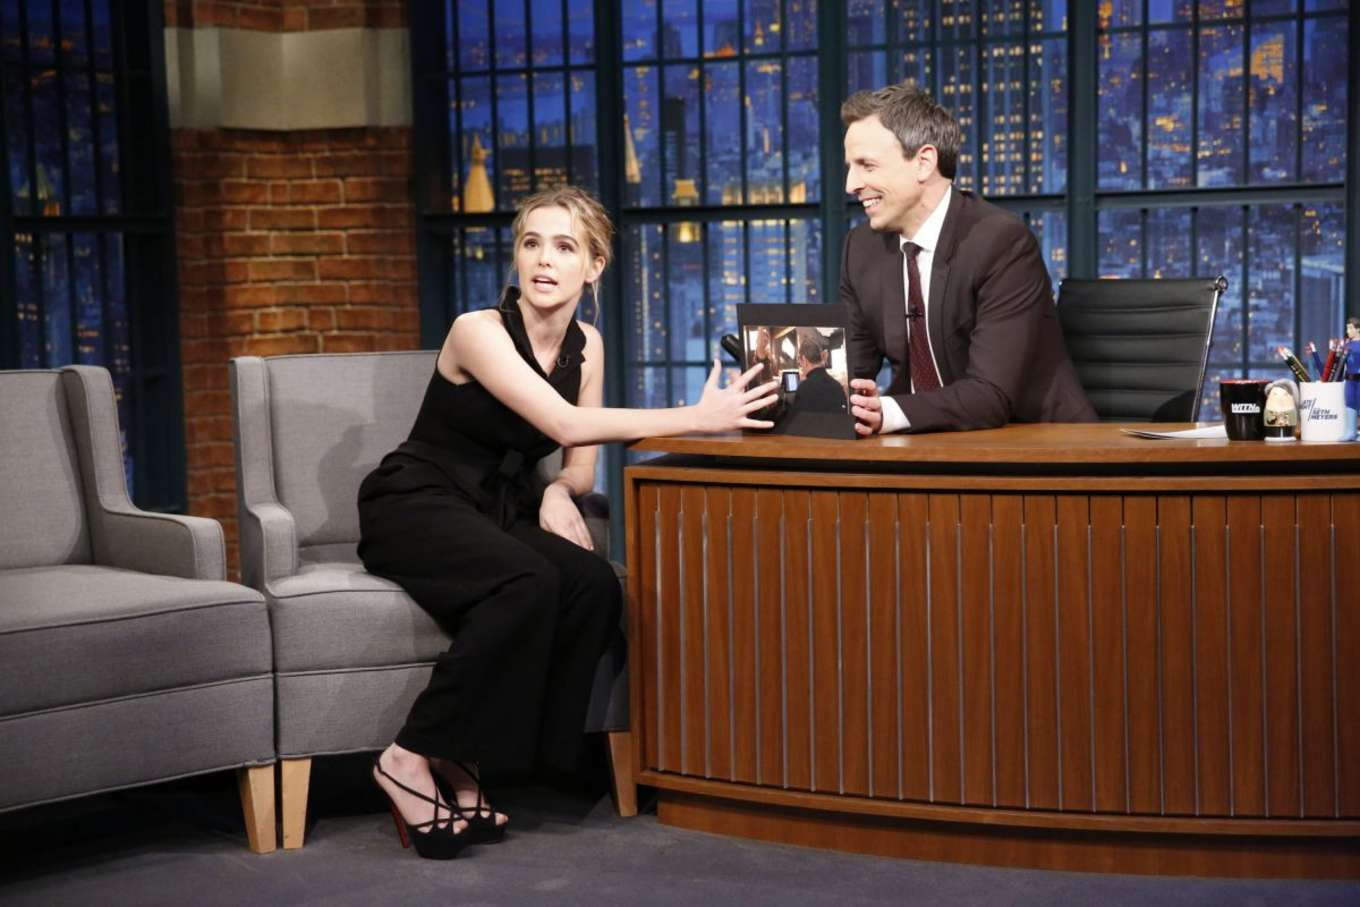 Zoey Deutch 2016 : Zoey Deutch on Late Night with Seth Meyers -04